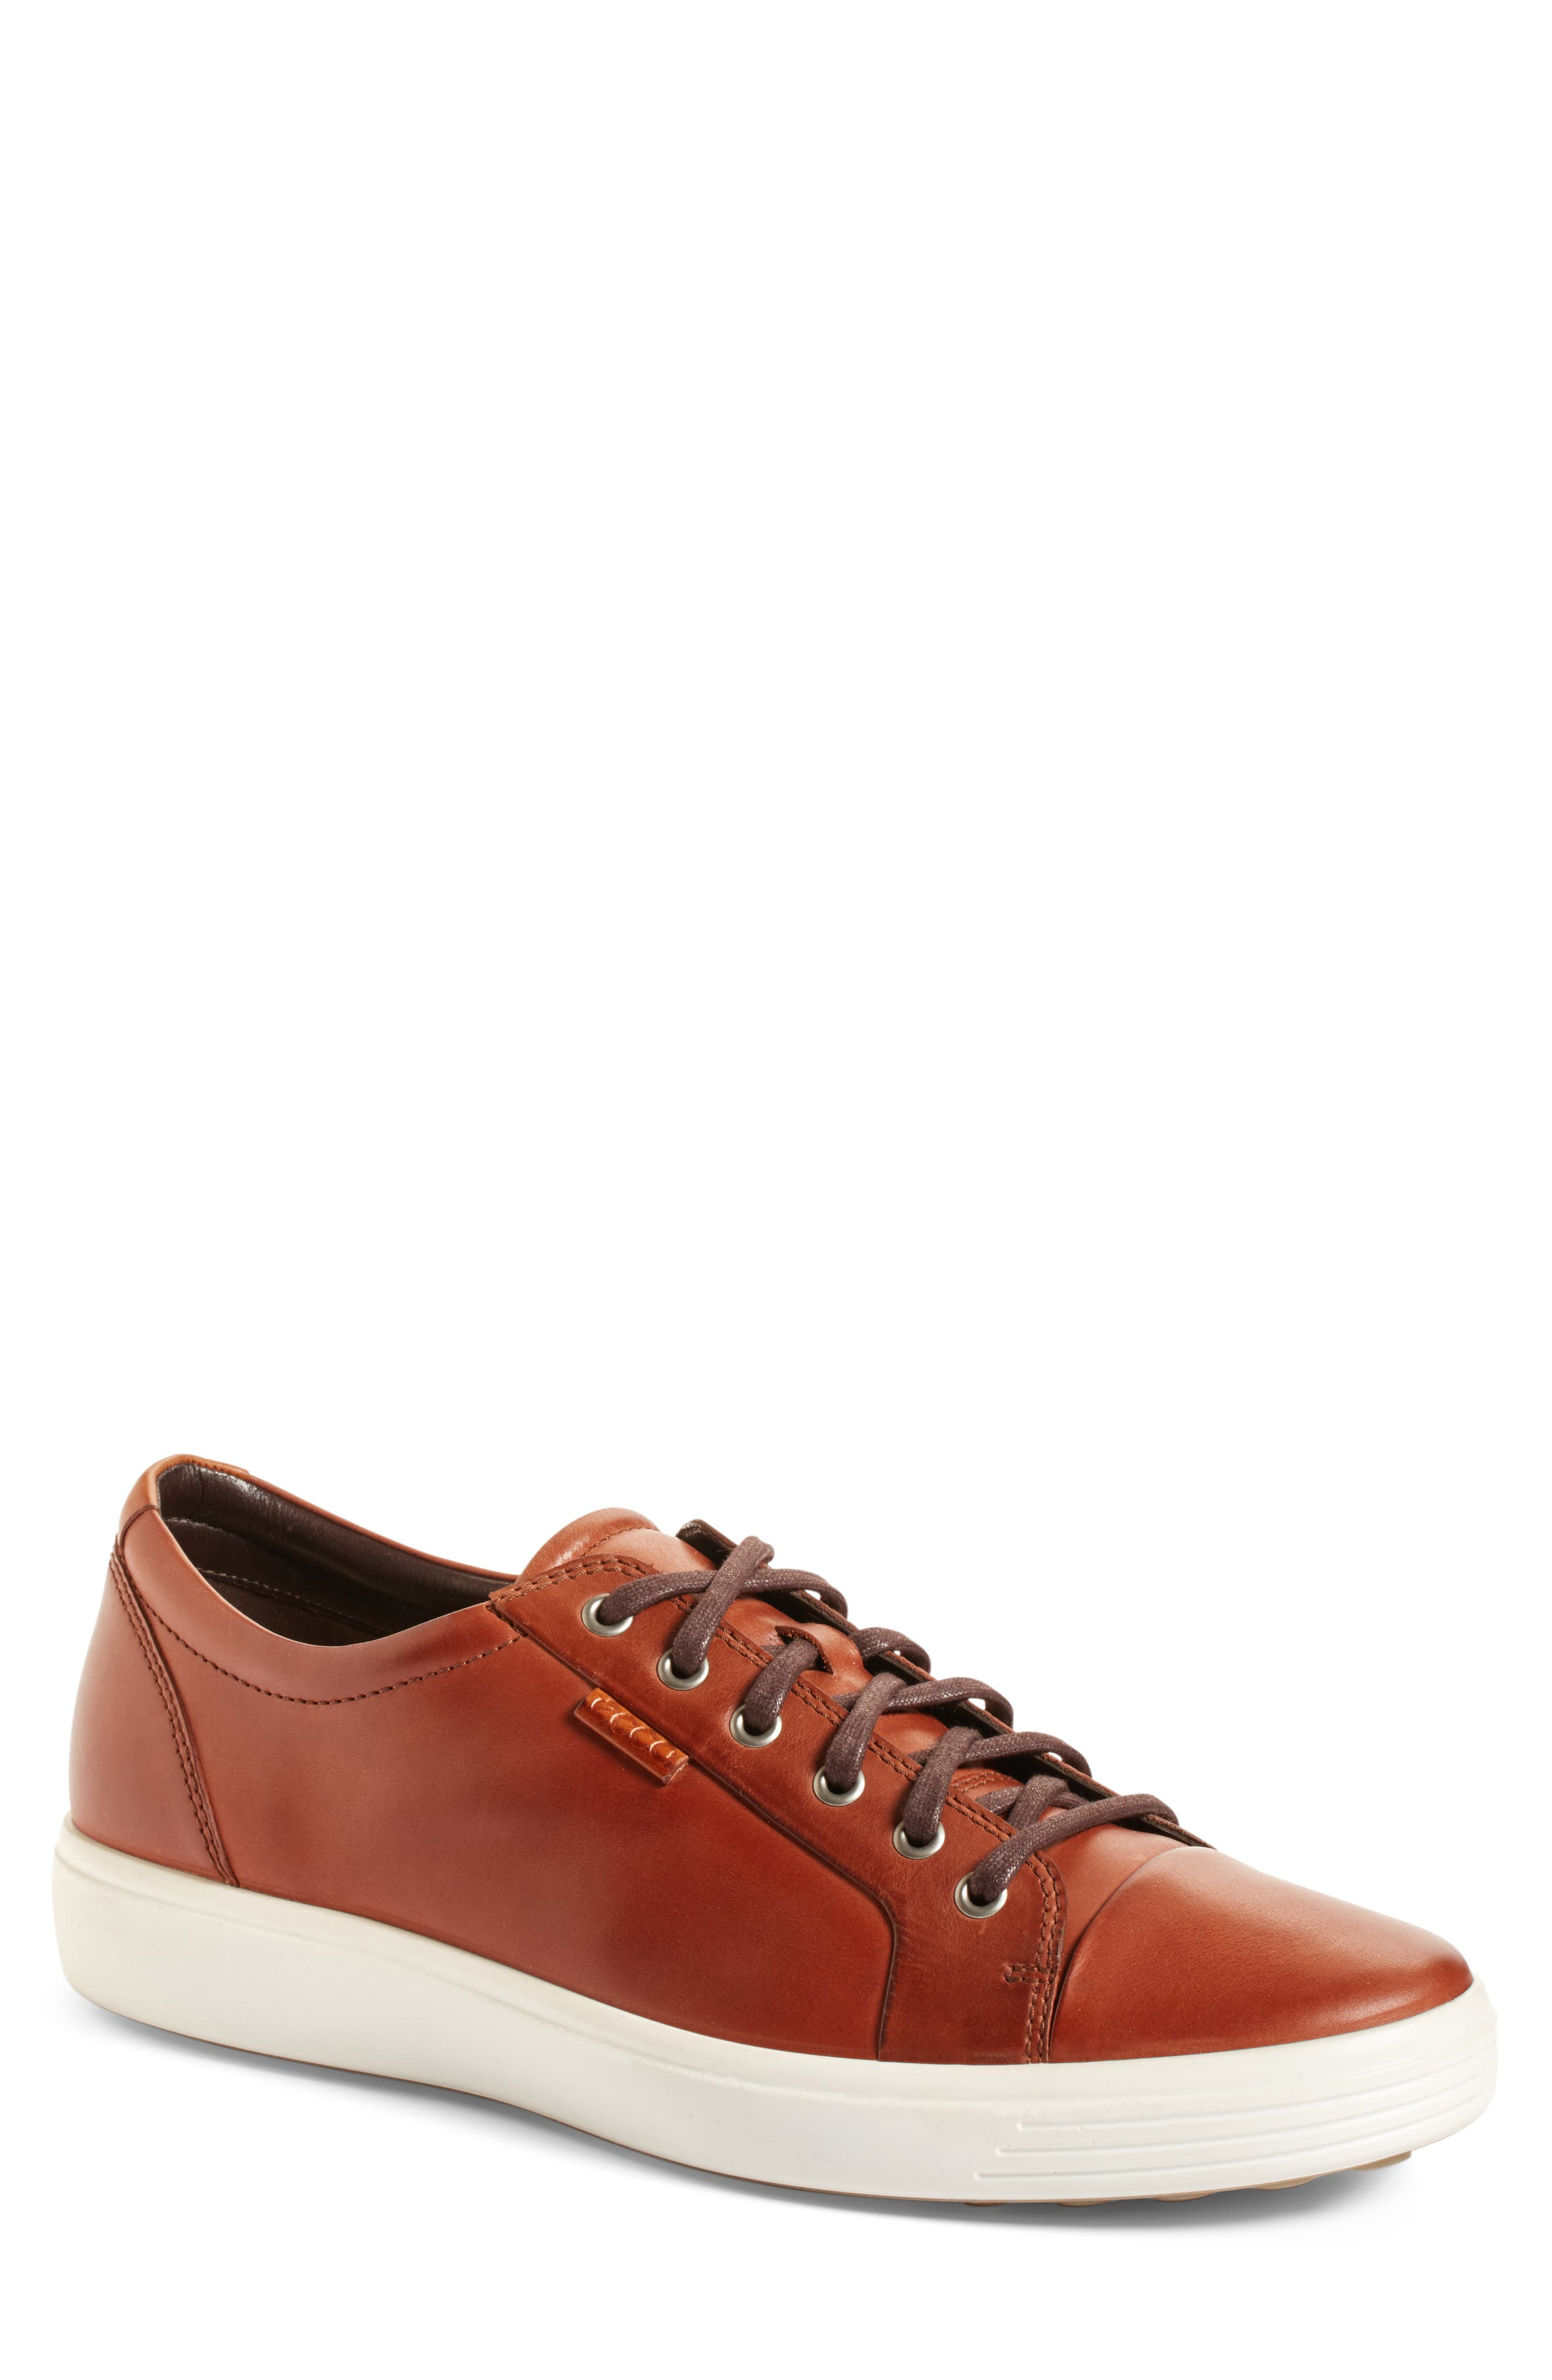 Soft VII Lace-Up Sneaker,                             Main thumbnail 16, color,